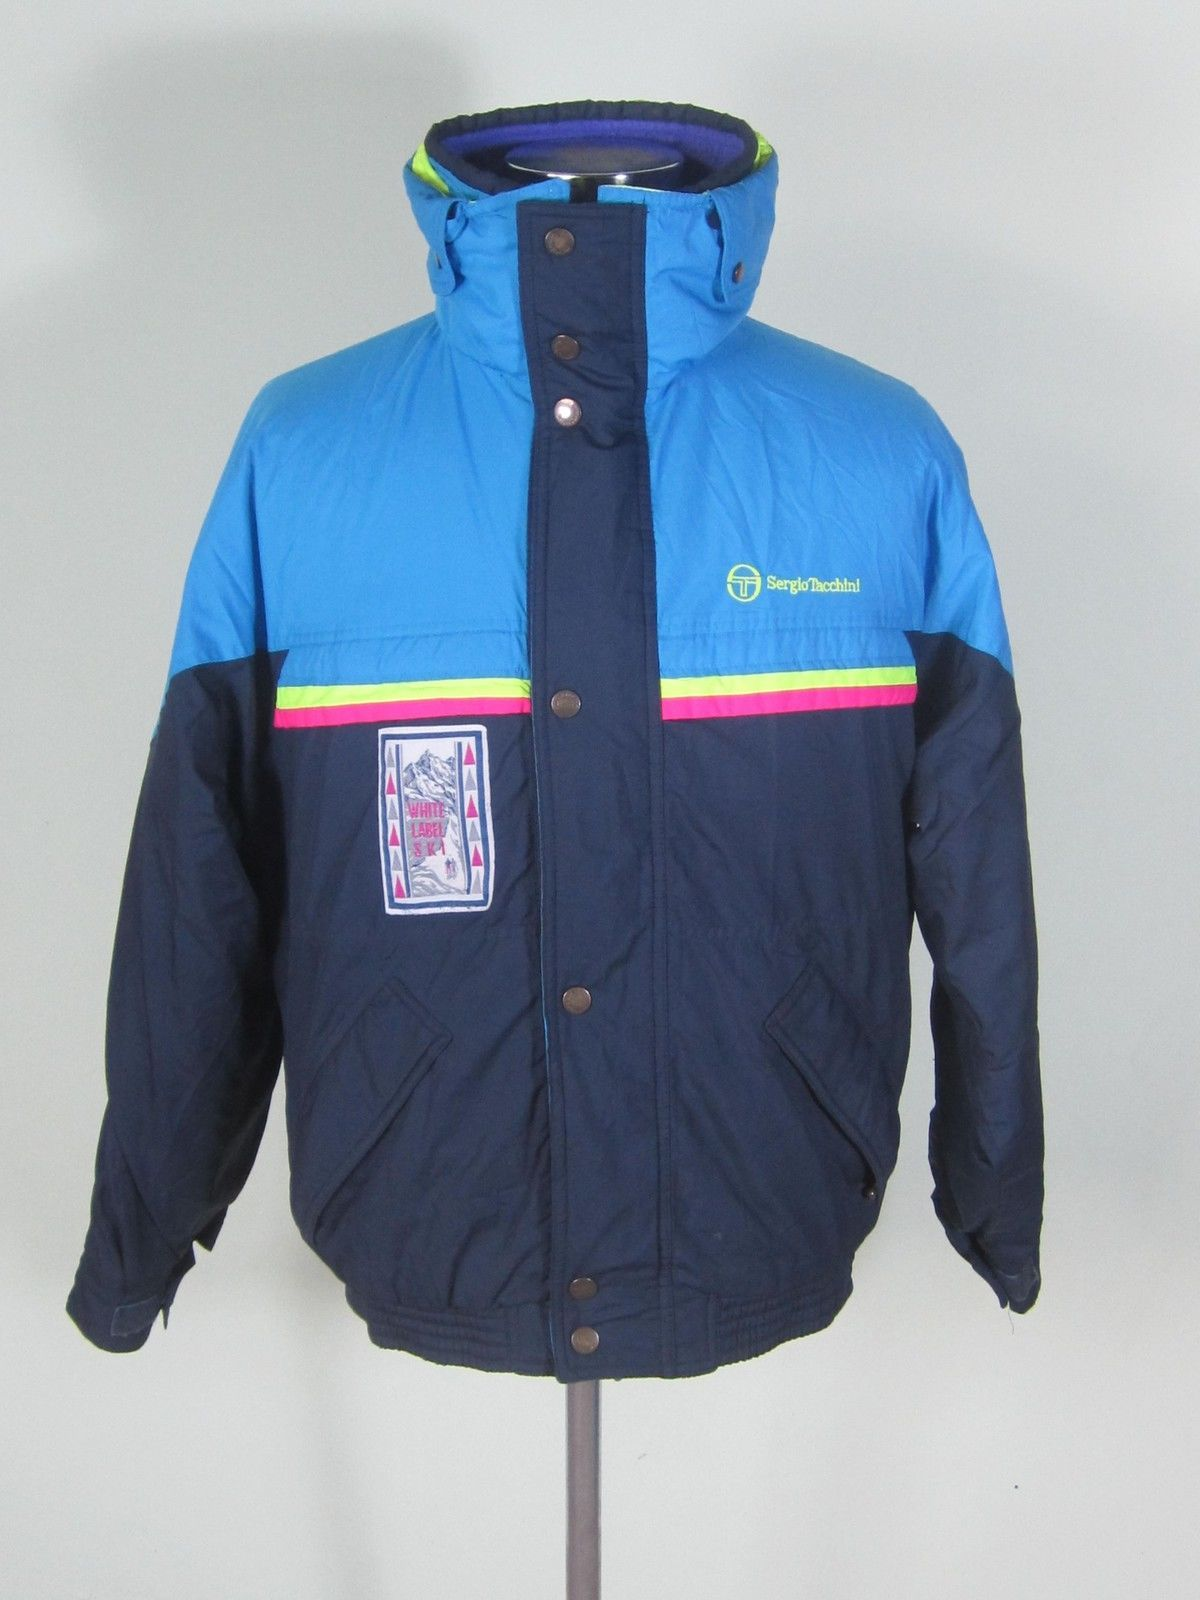 bfd9ad1f33f Vintage Mens Sergio Tacchini White Label Ski Jacket, Size M Medium, Blue  #NDR089 in Clothes, Shoes & Accessories, Men's Clothing, Coats & Jackets |  eBay